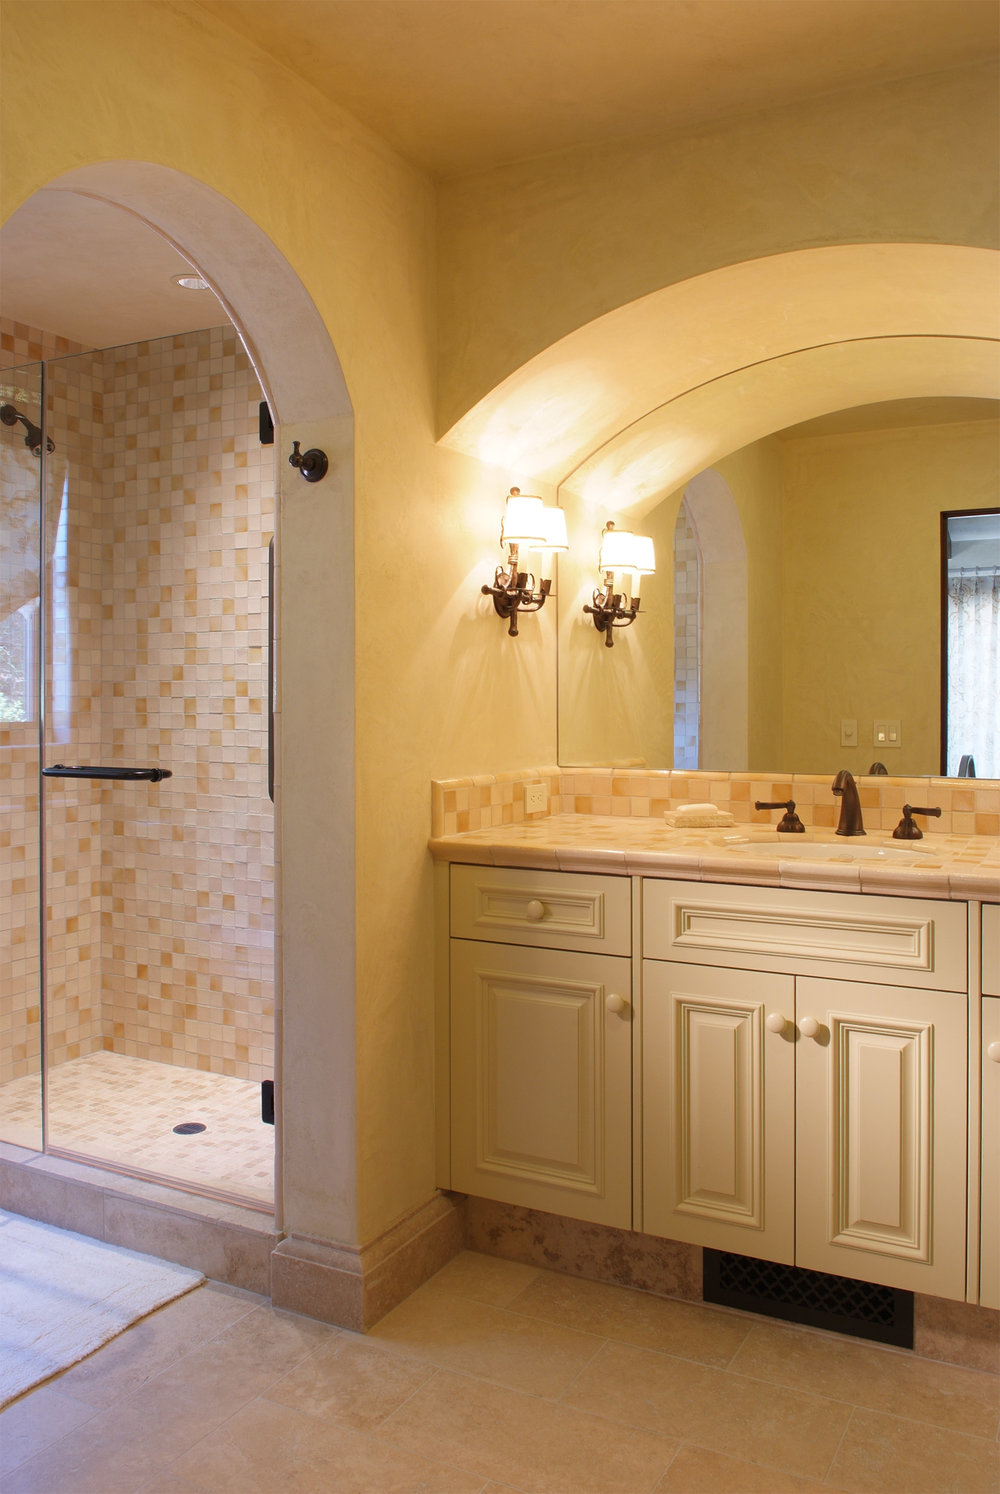 Napa_Valley_Italian_Villa_bathroom_01.jpg